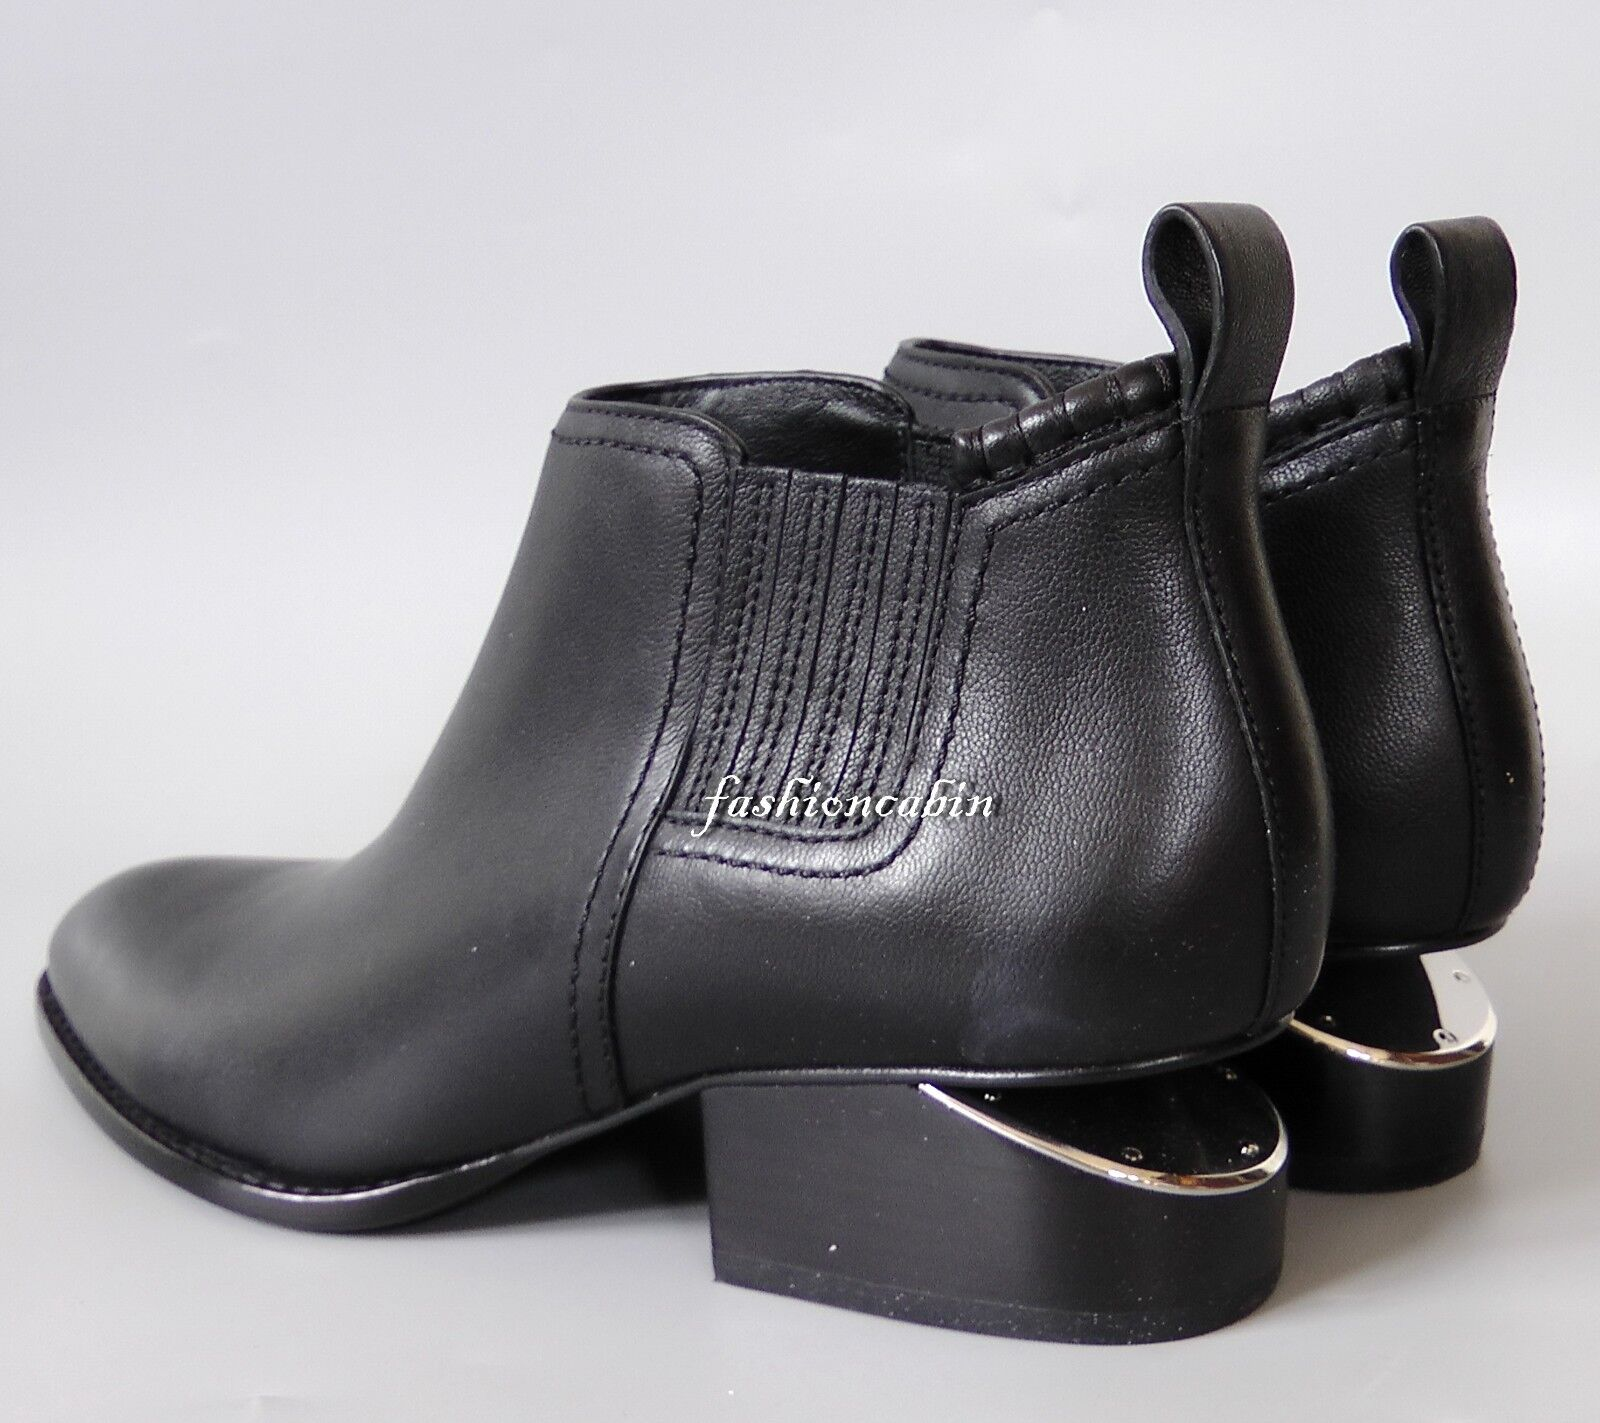 NEW ALEXANDER WANG Kori Cut Out Heel Ankle Bootie Shoe, Black Leather